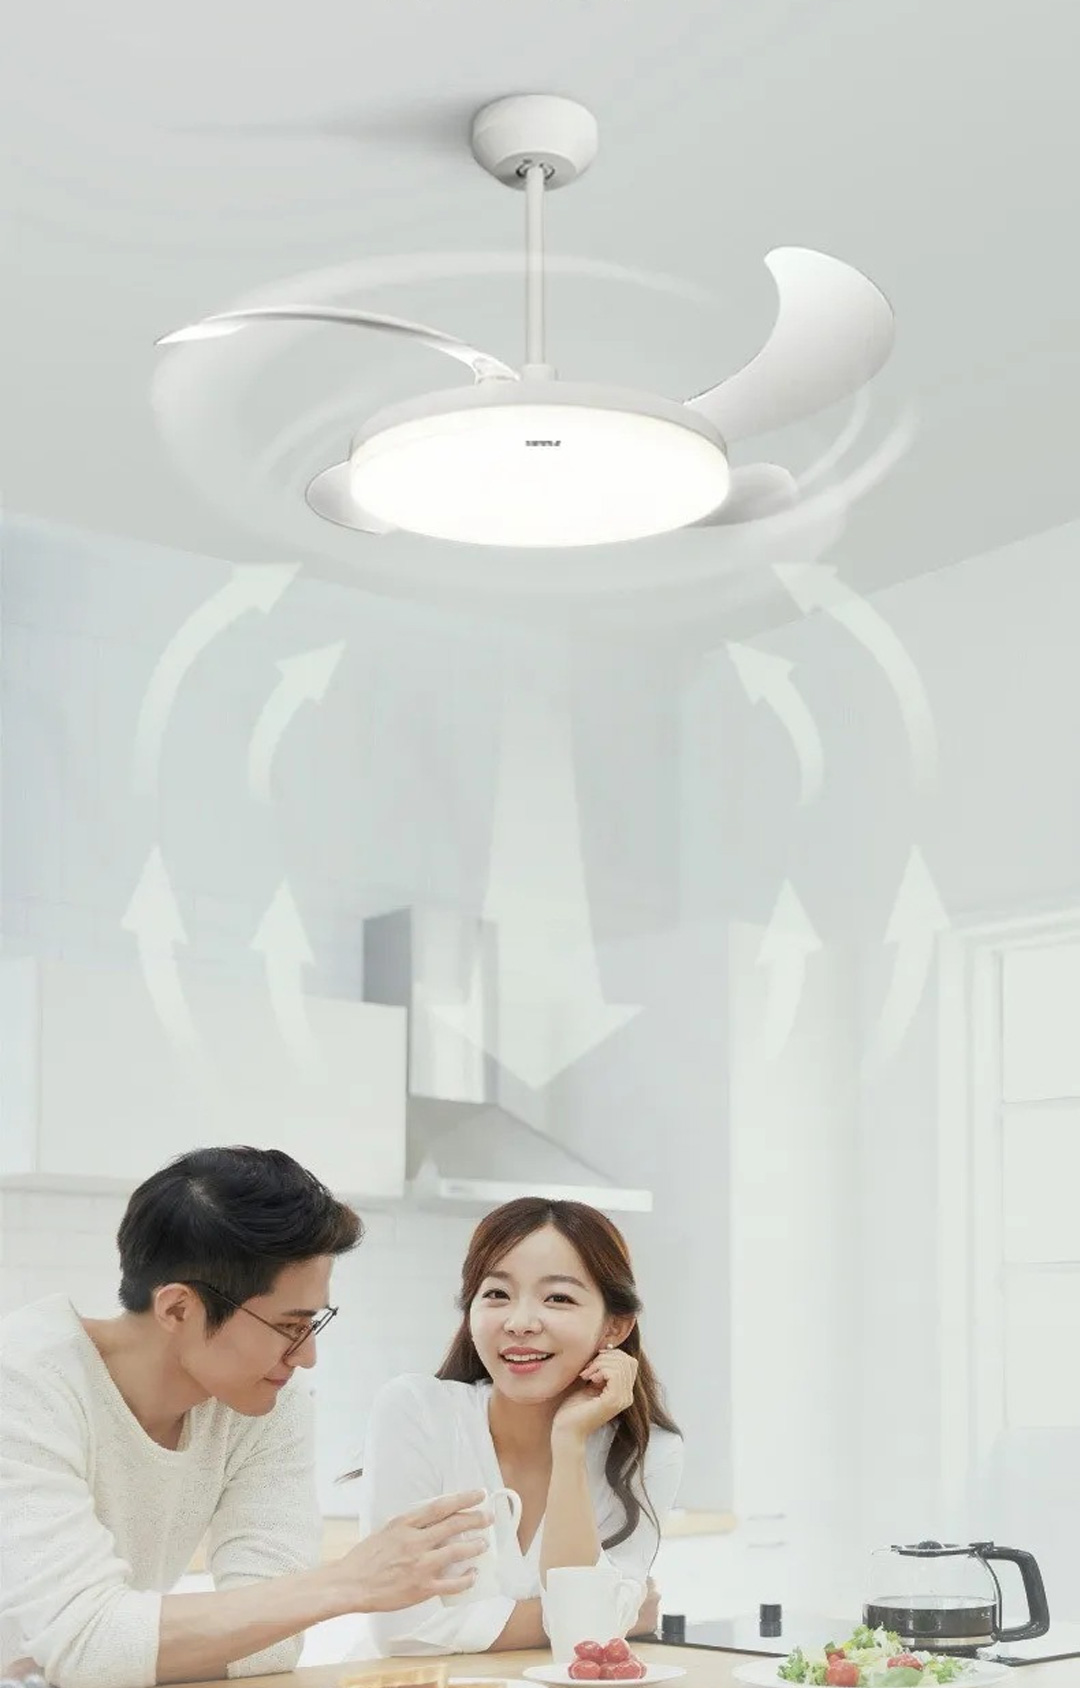 Xiaomi Opple 36″ Retractable Fan With Light